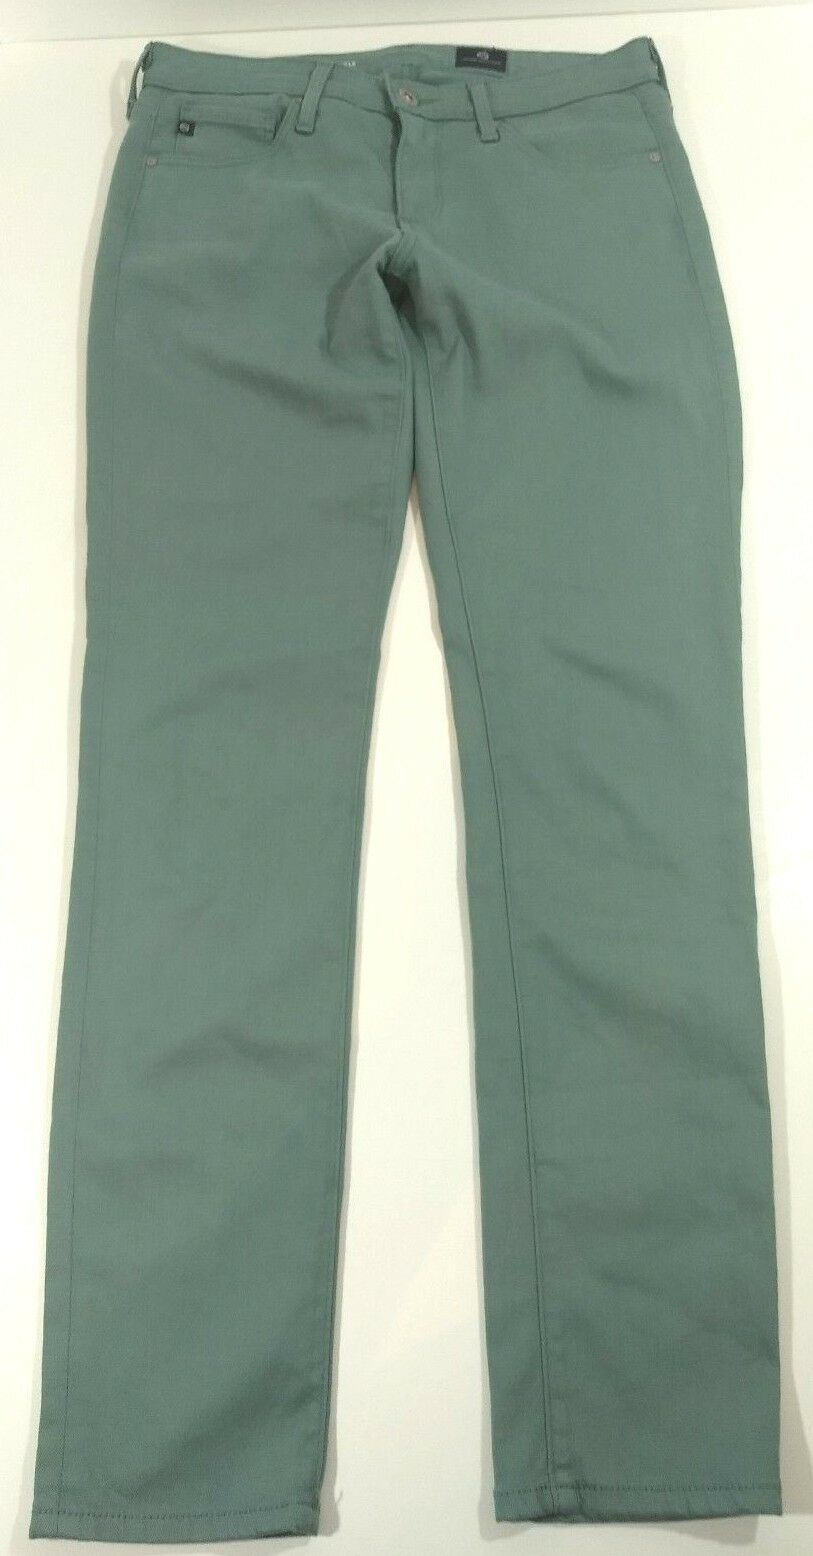 AG Adriano goldschmied The Stevie Ankle Stretch Pants Light Green Size 29R